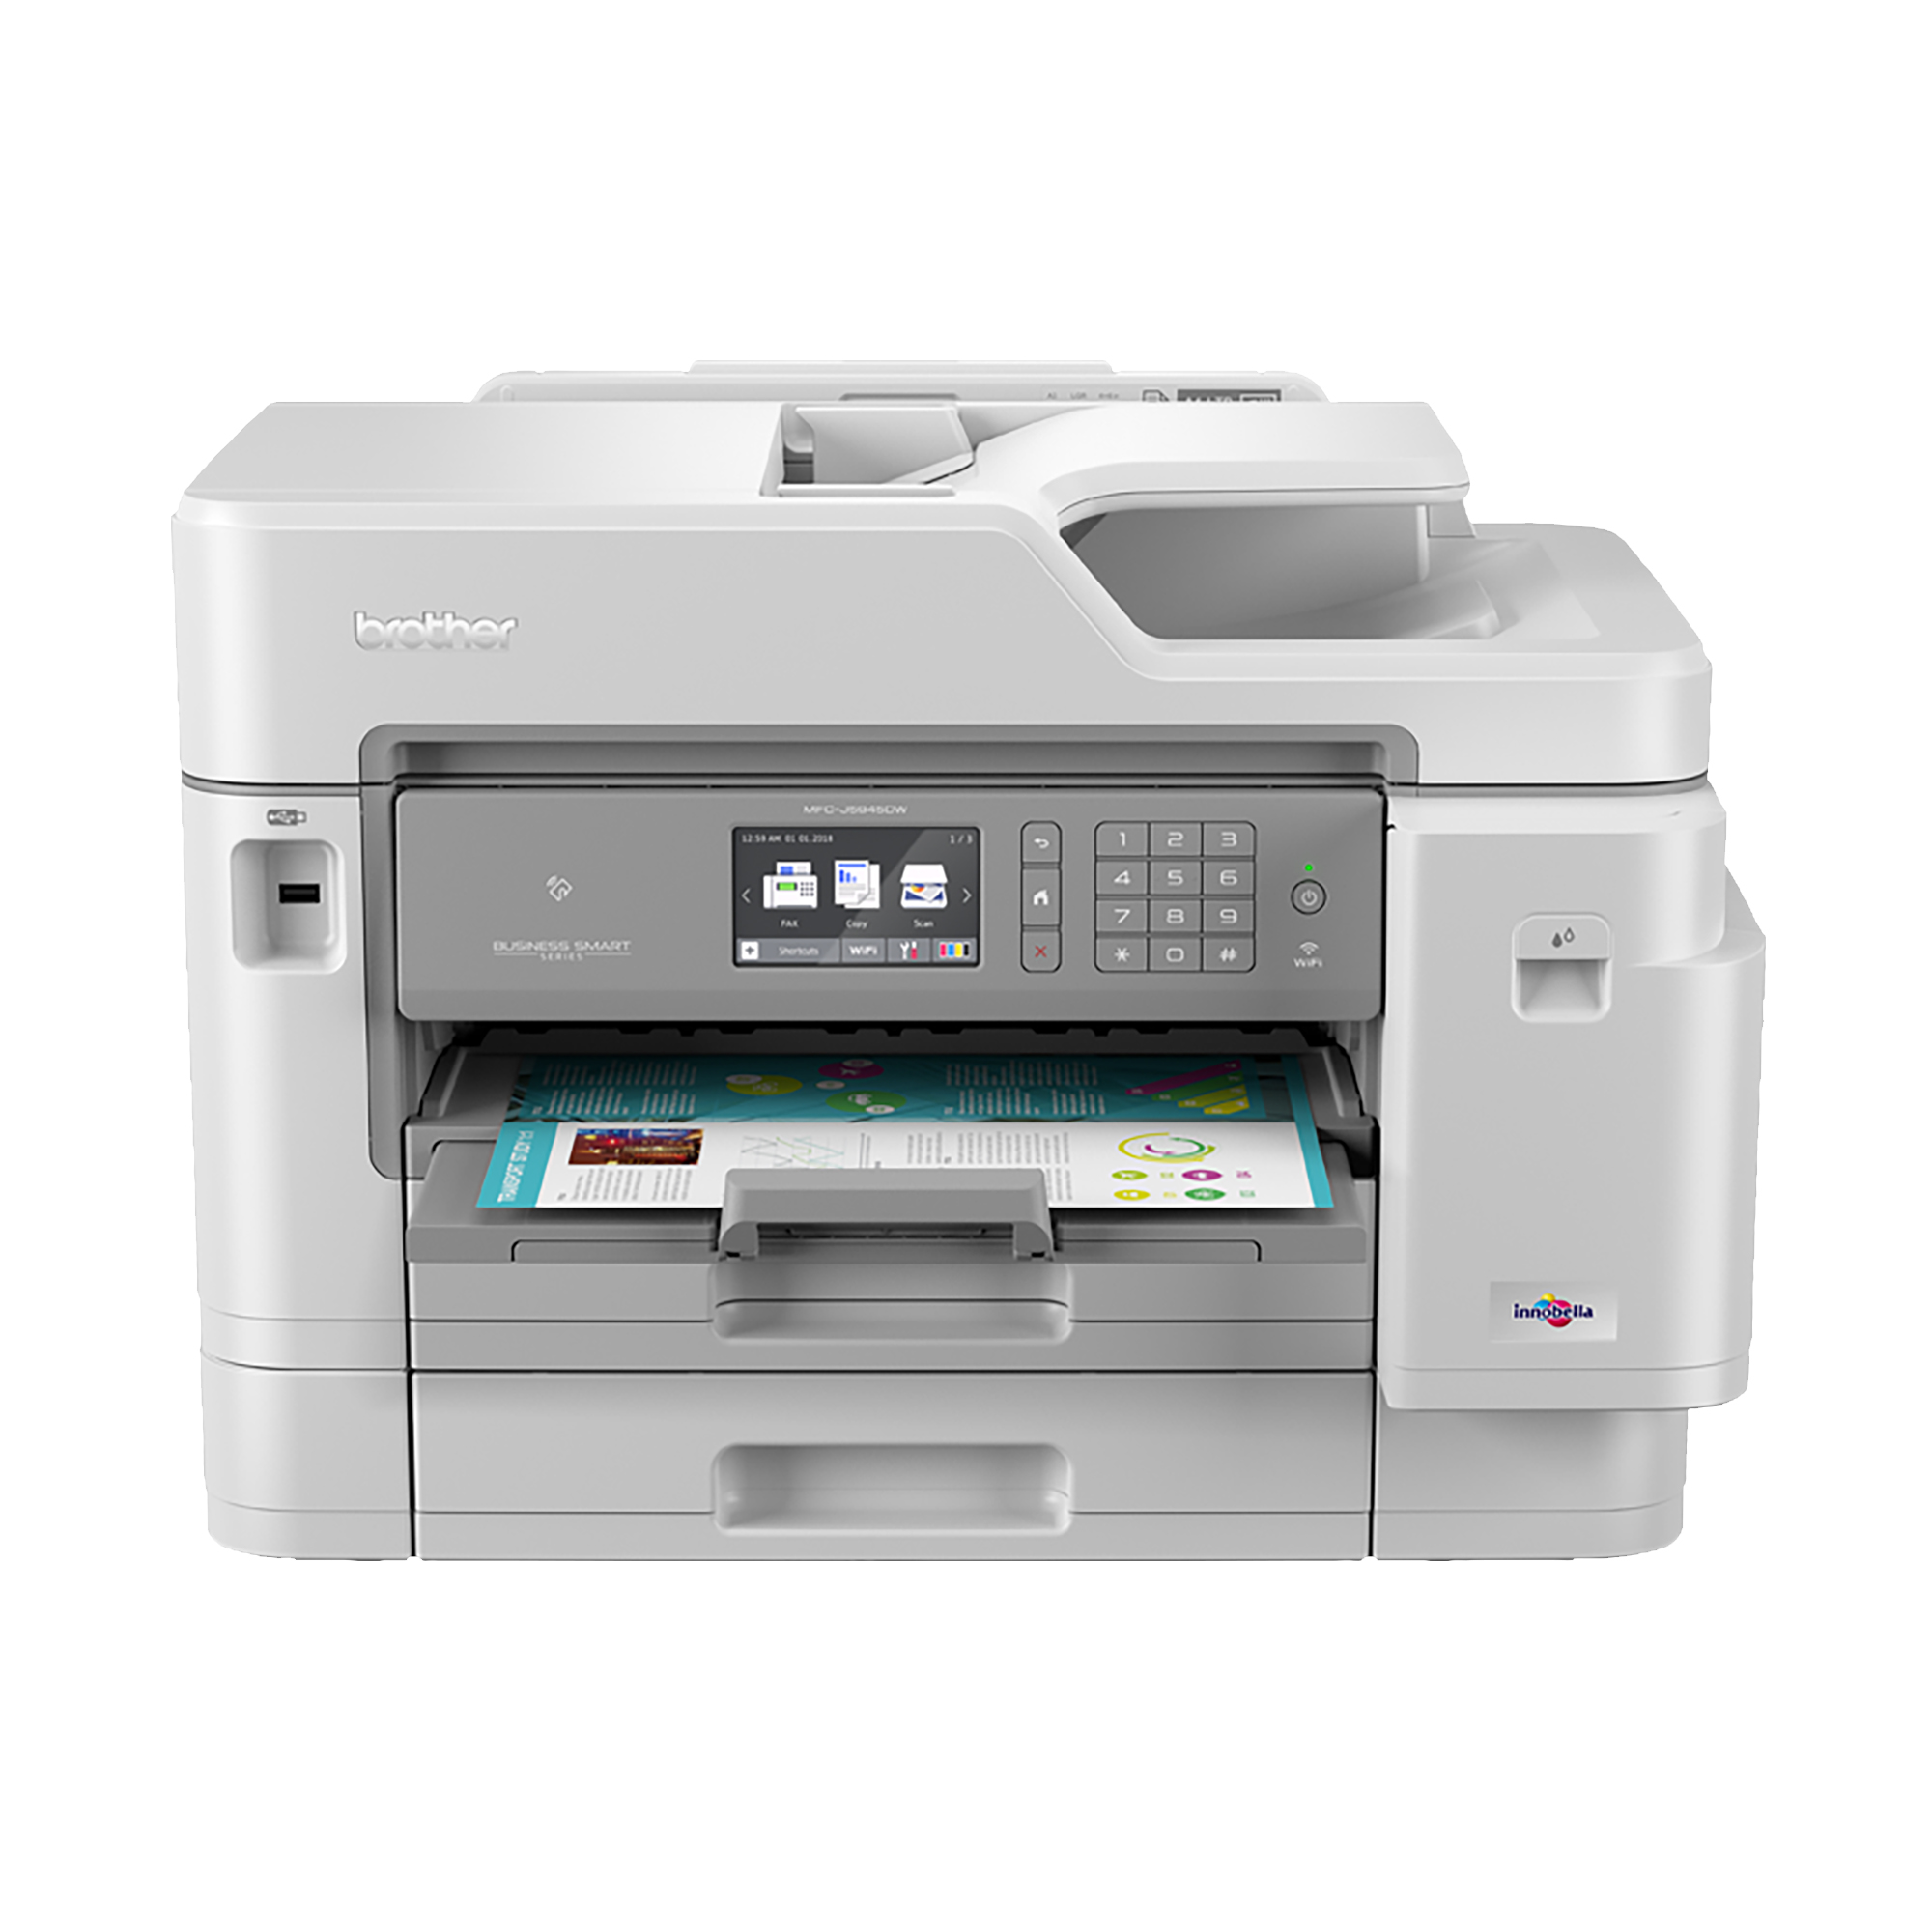 Multifunctional Machines Brother MFC-J5945DW Inkjet Printer Multifunctional 4 in 1 Ref MFC-J5945DW